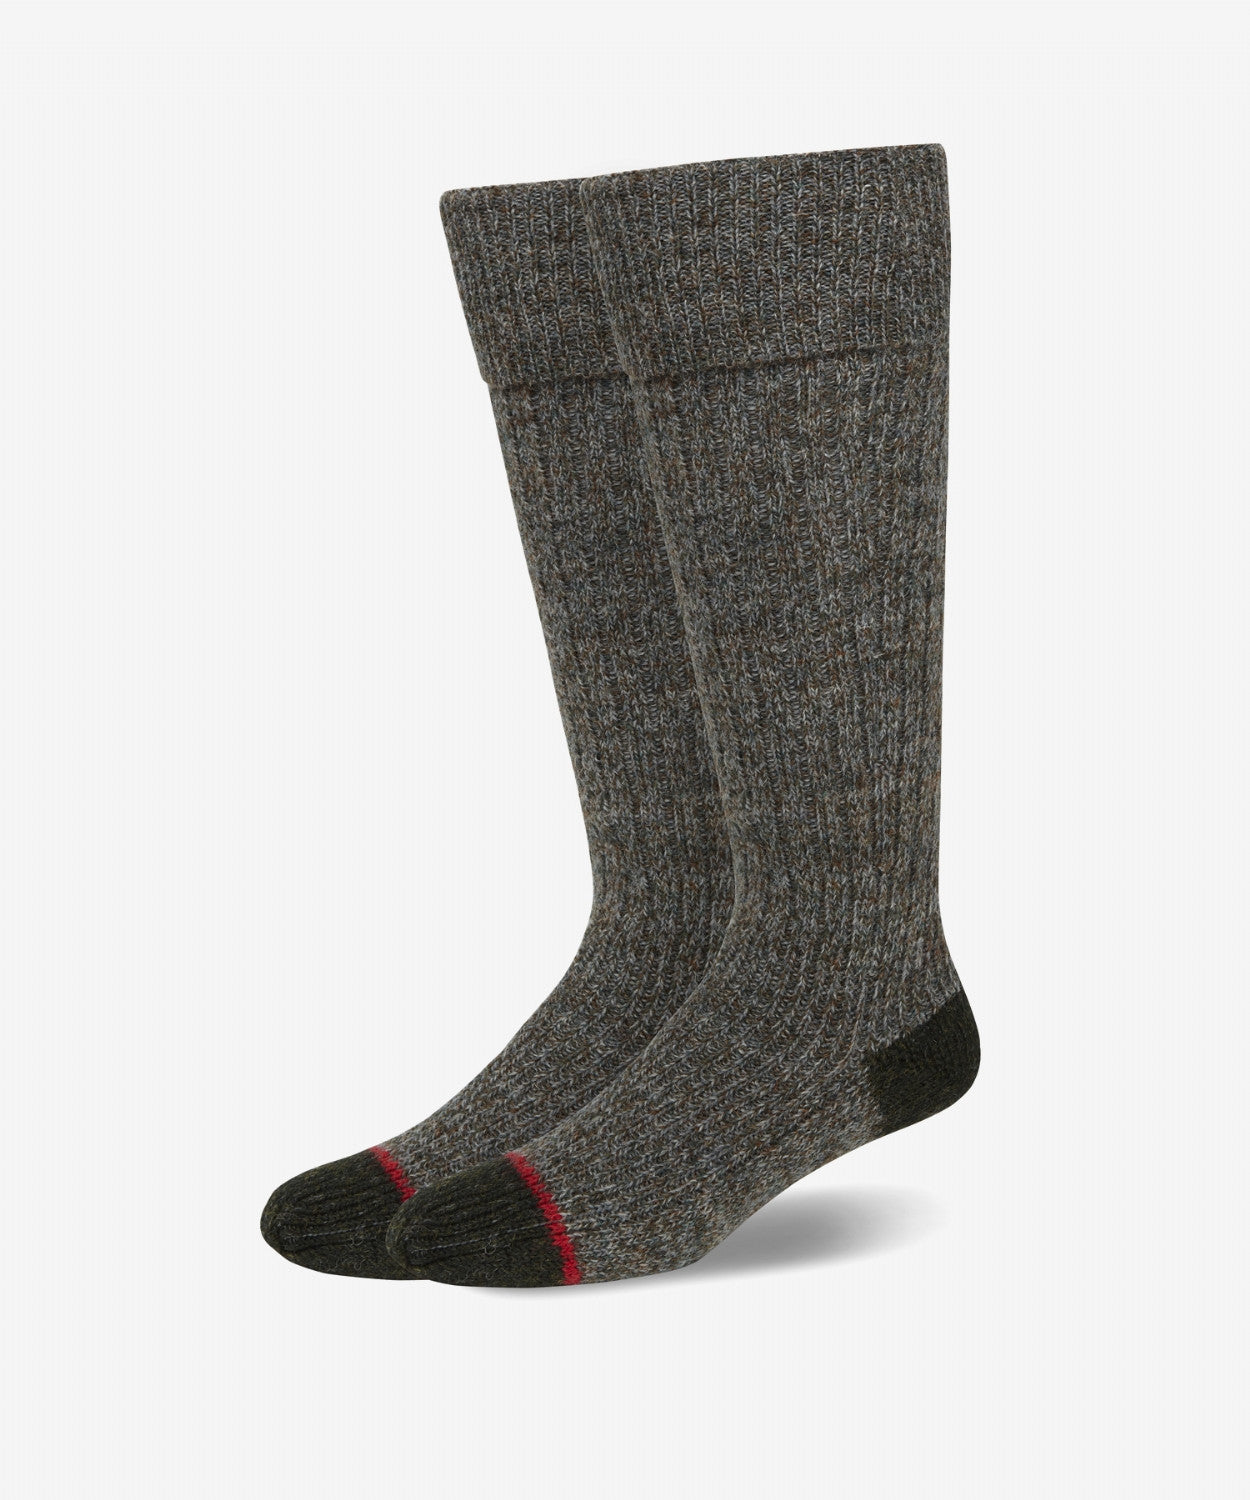 DK OLIVE TRADITIONAL RIB SOCK [MADE IN UK]